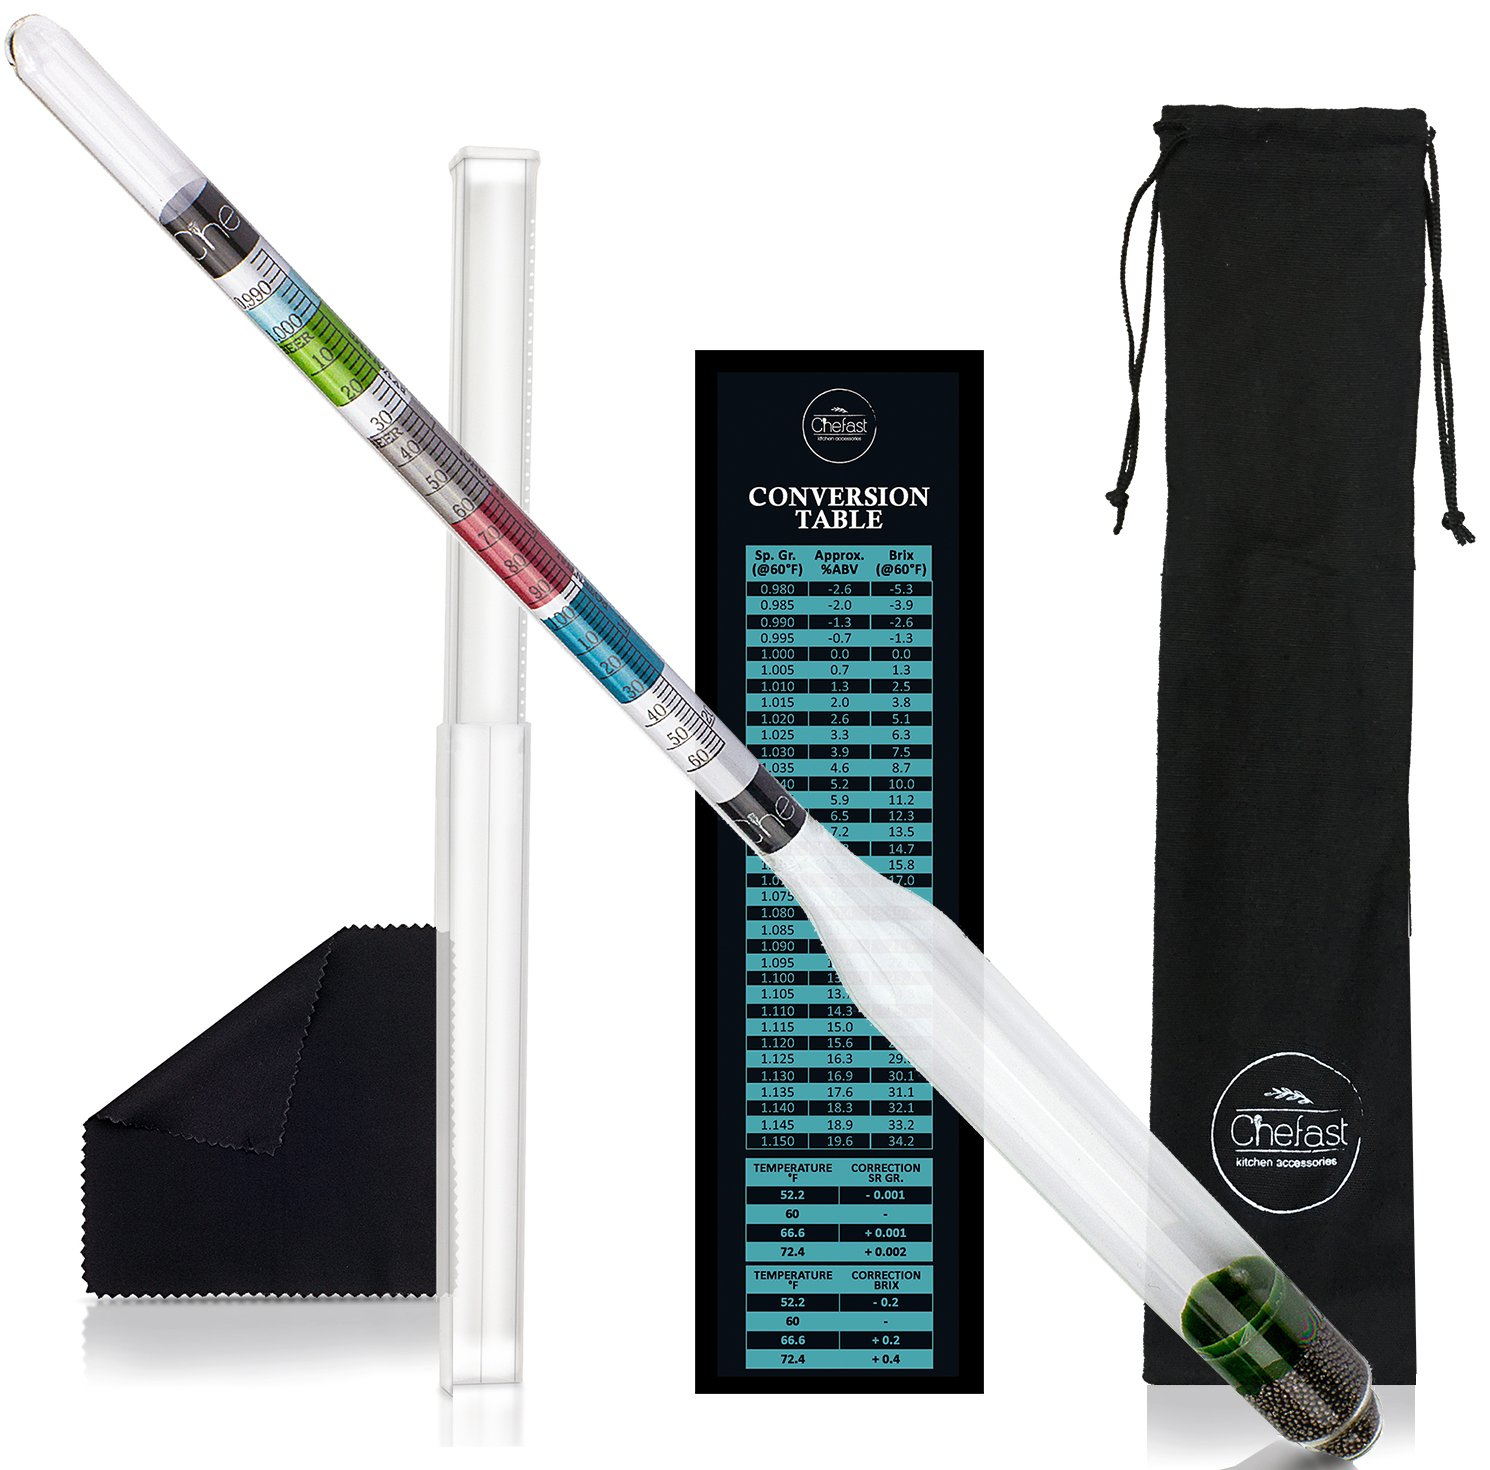 Chefast Hydrometer Kit for Wine, Beer, Mead and Kombucha - Combo Set of Triple-Scale Alcohol Hydrometer, Cleaning Cloth, and Storage Bag - ABV, Brix and Gravity Tester - Home Brewing Supplies